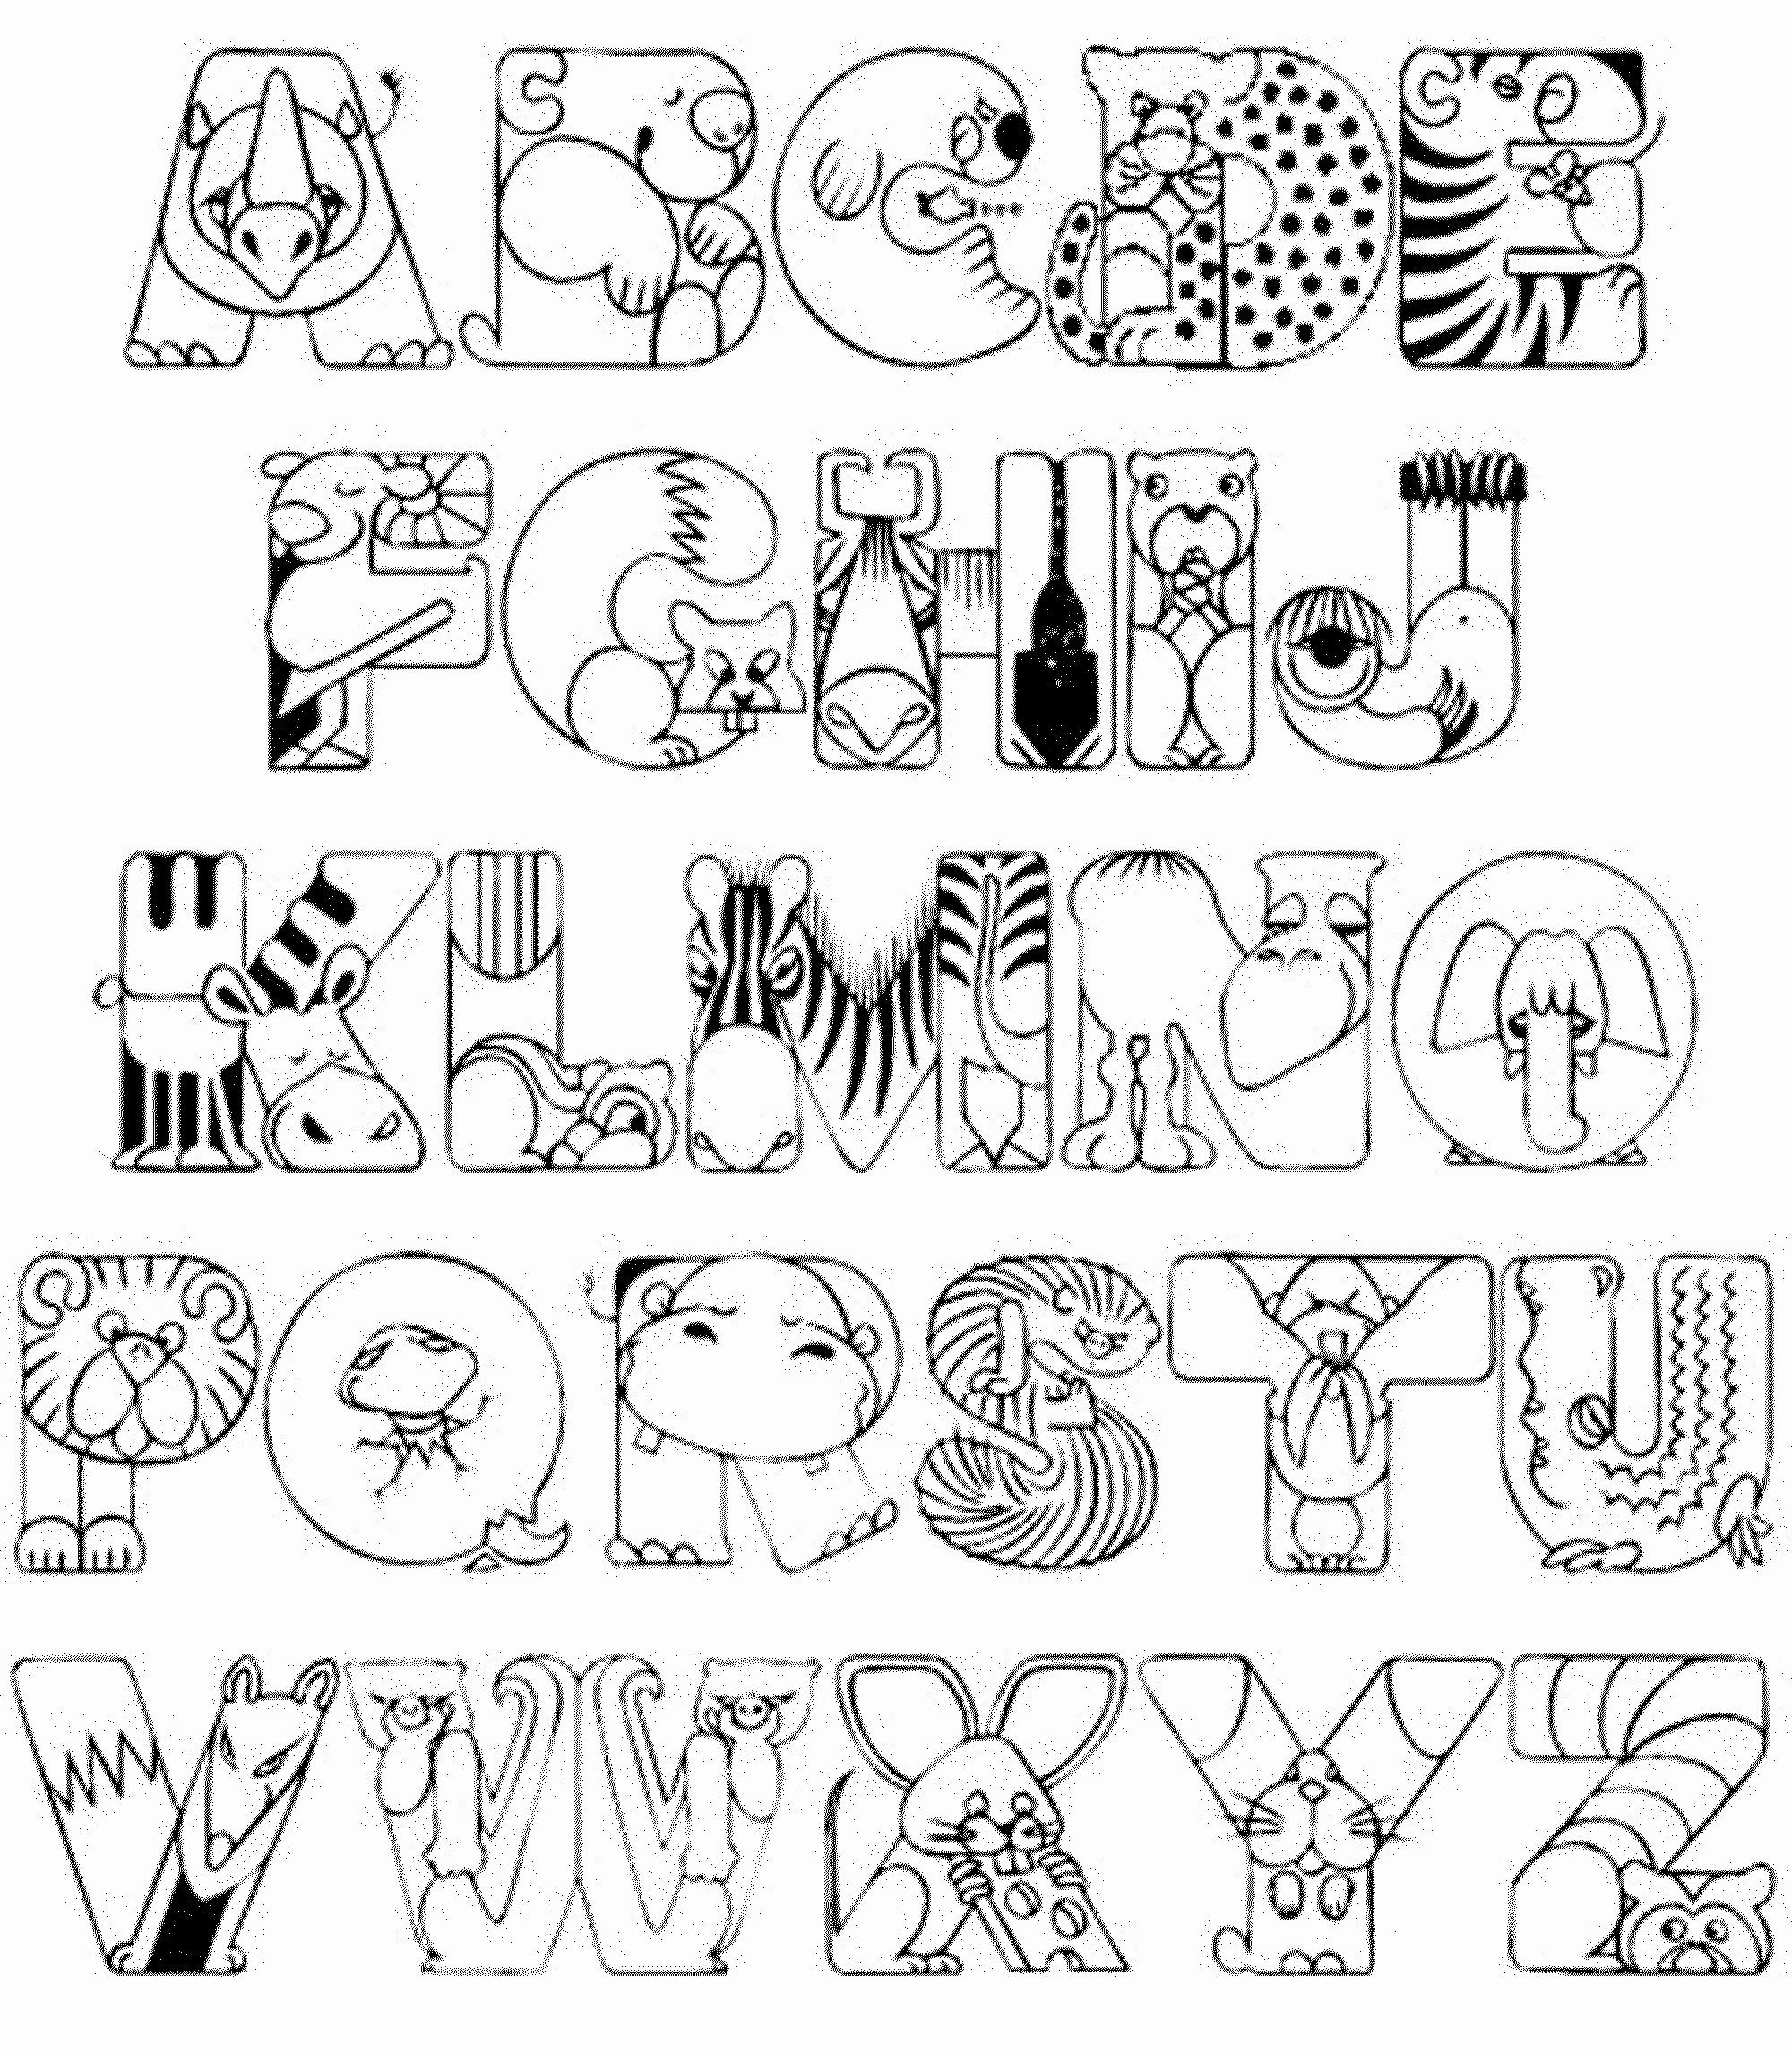 Alphabet Coloring Book Printable Pdf Free Luxury Alphabet Coloring Pages Pdf Kindergarten Coloring Pages Abc Coloring Pages Alphabet Coloring Pages